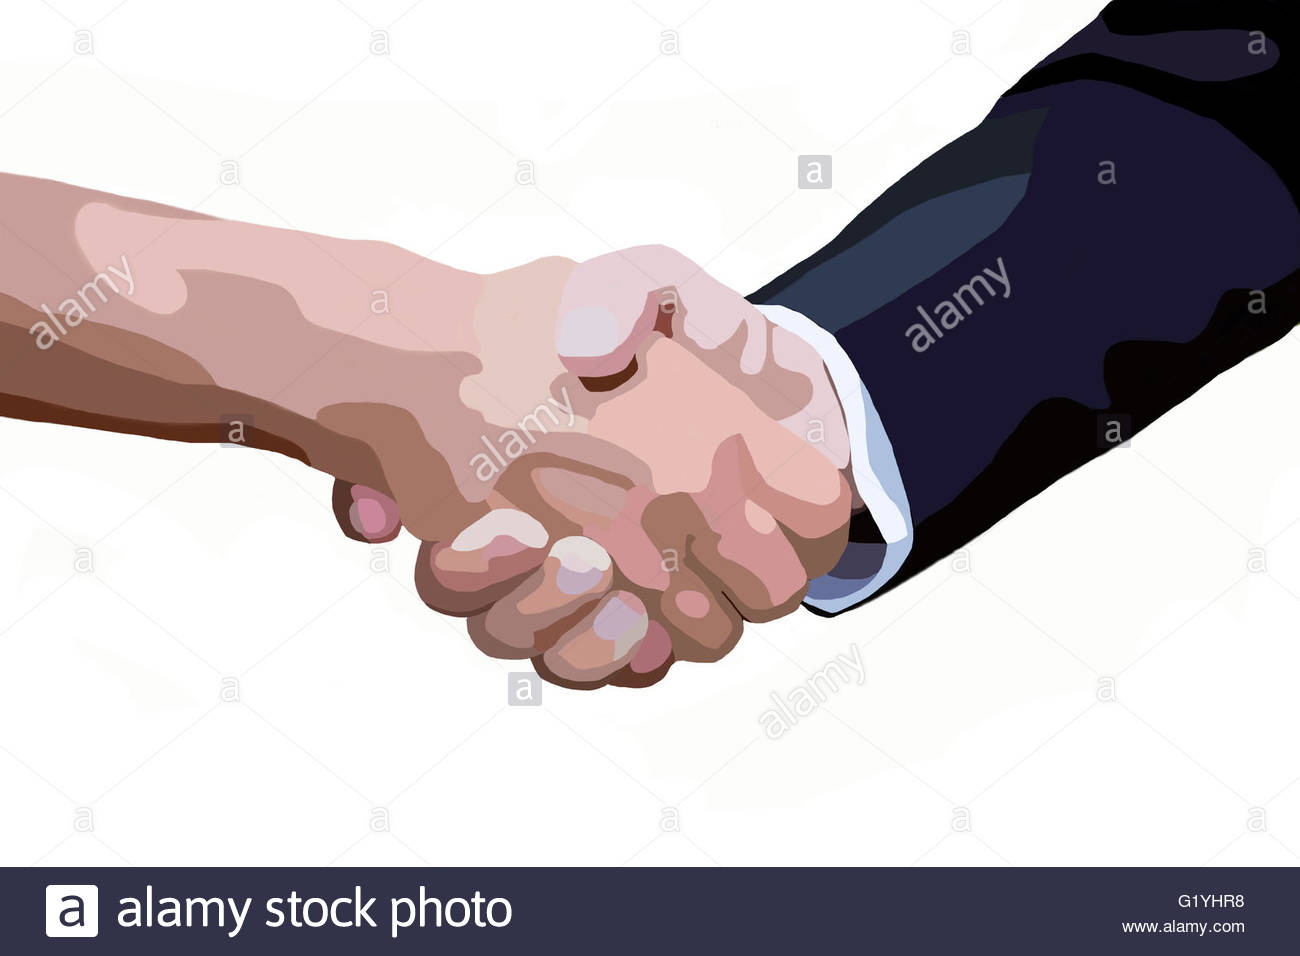 1300x956 Drawing Of Handshake Of Two Men On White Background Stock Photo